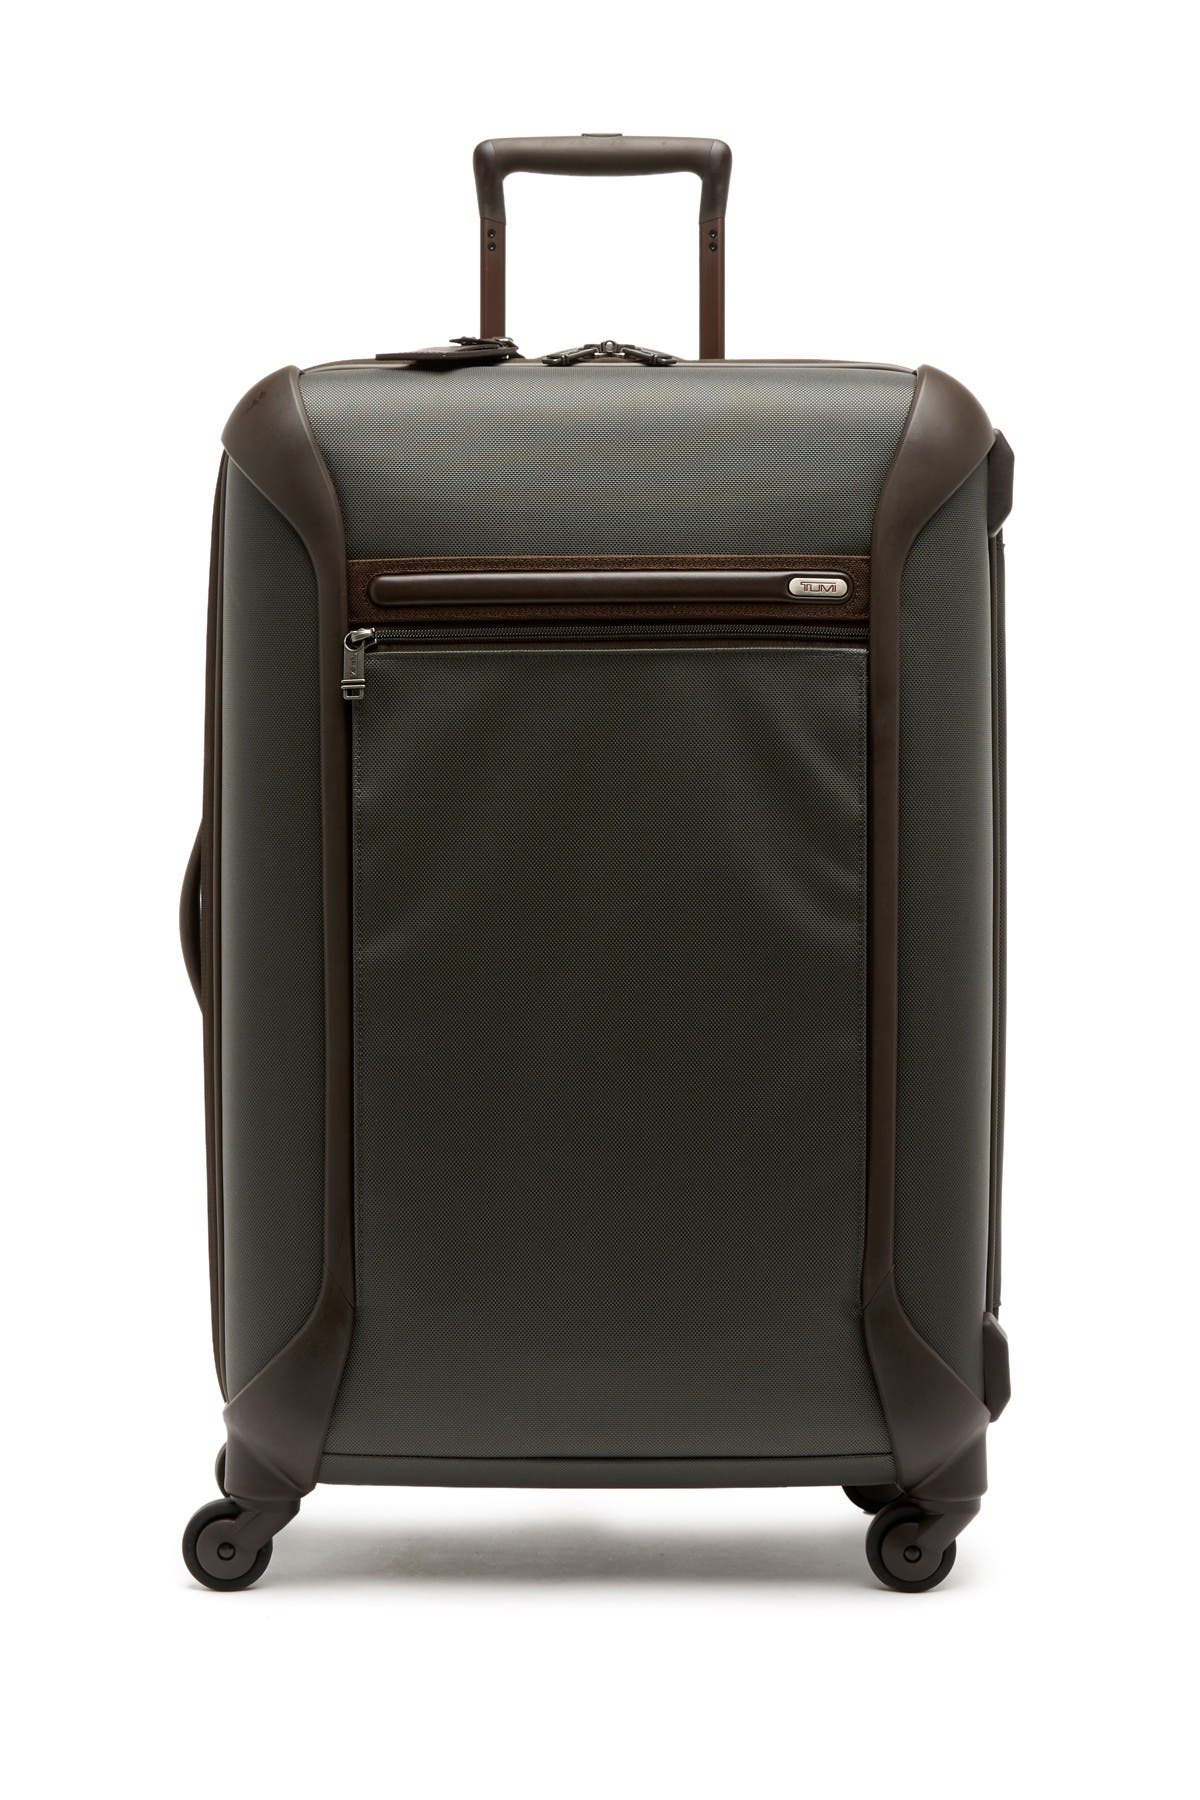 "Image of Tumi Lightweight Medium 26"" International Packing Case"